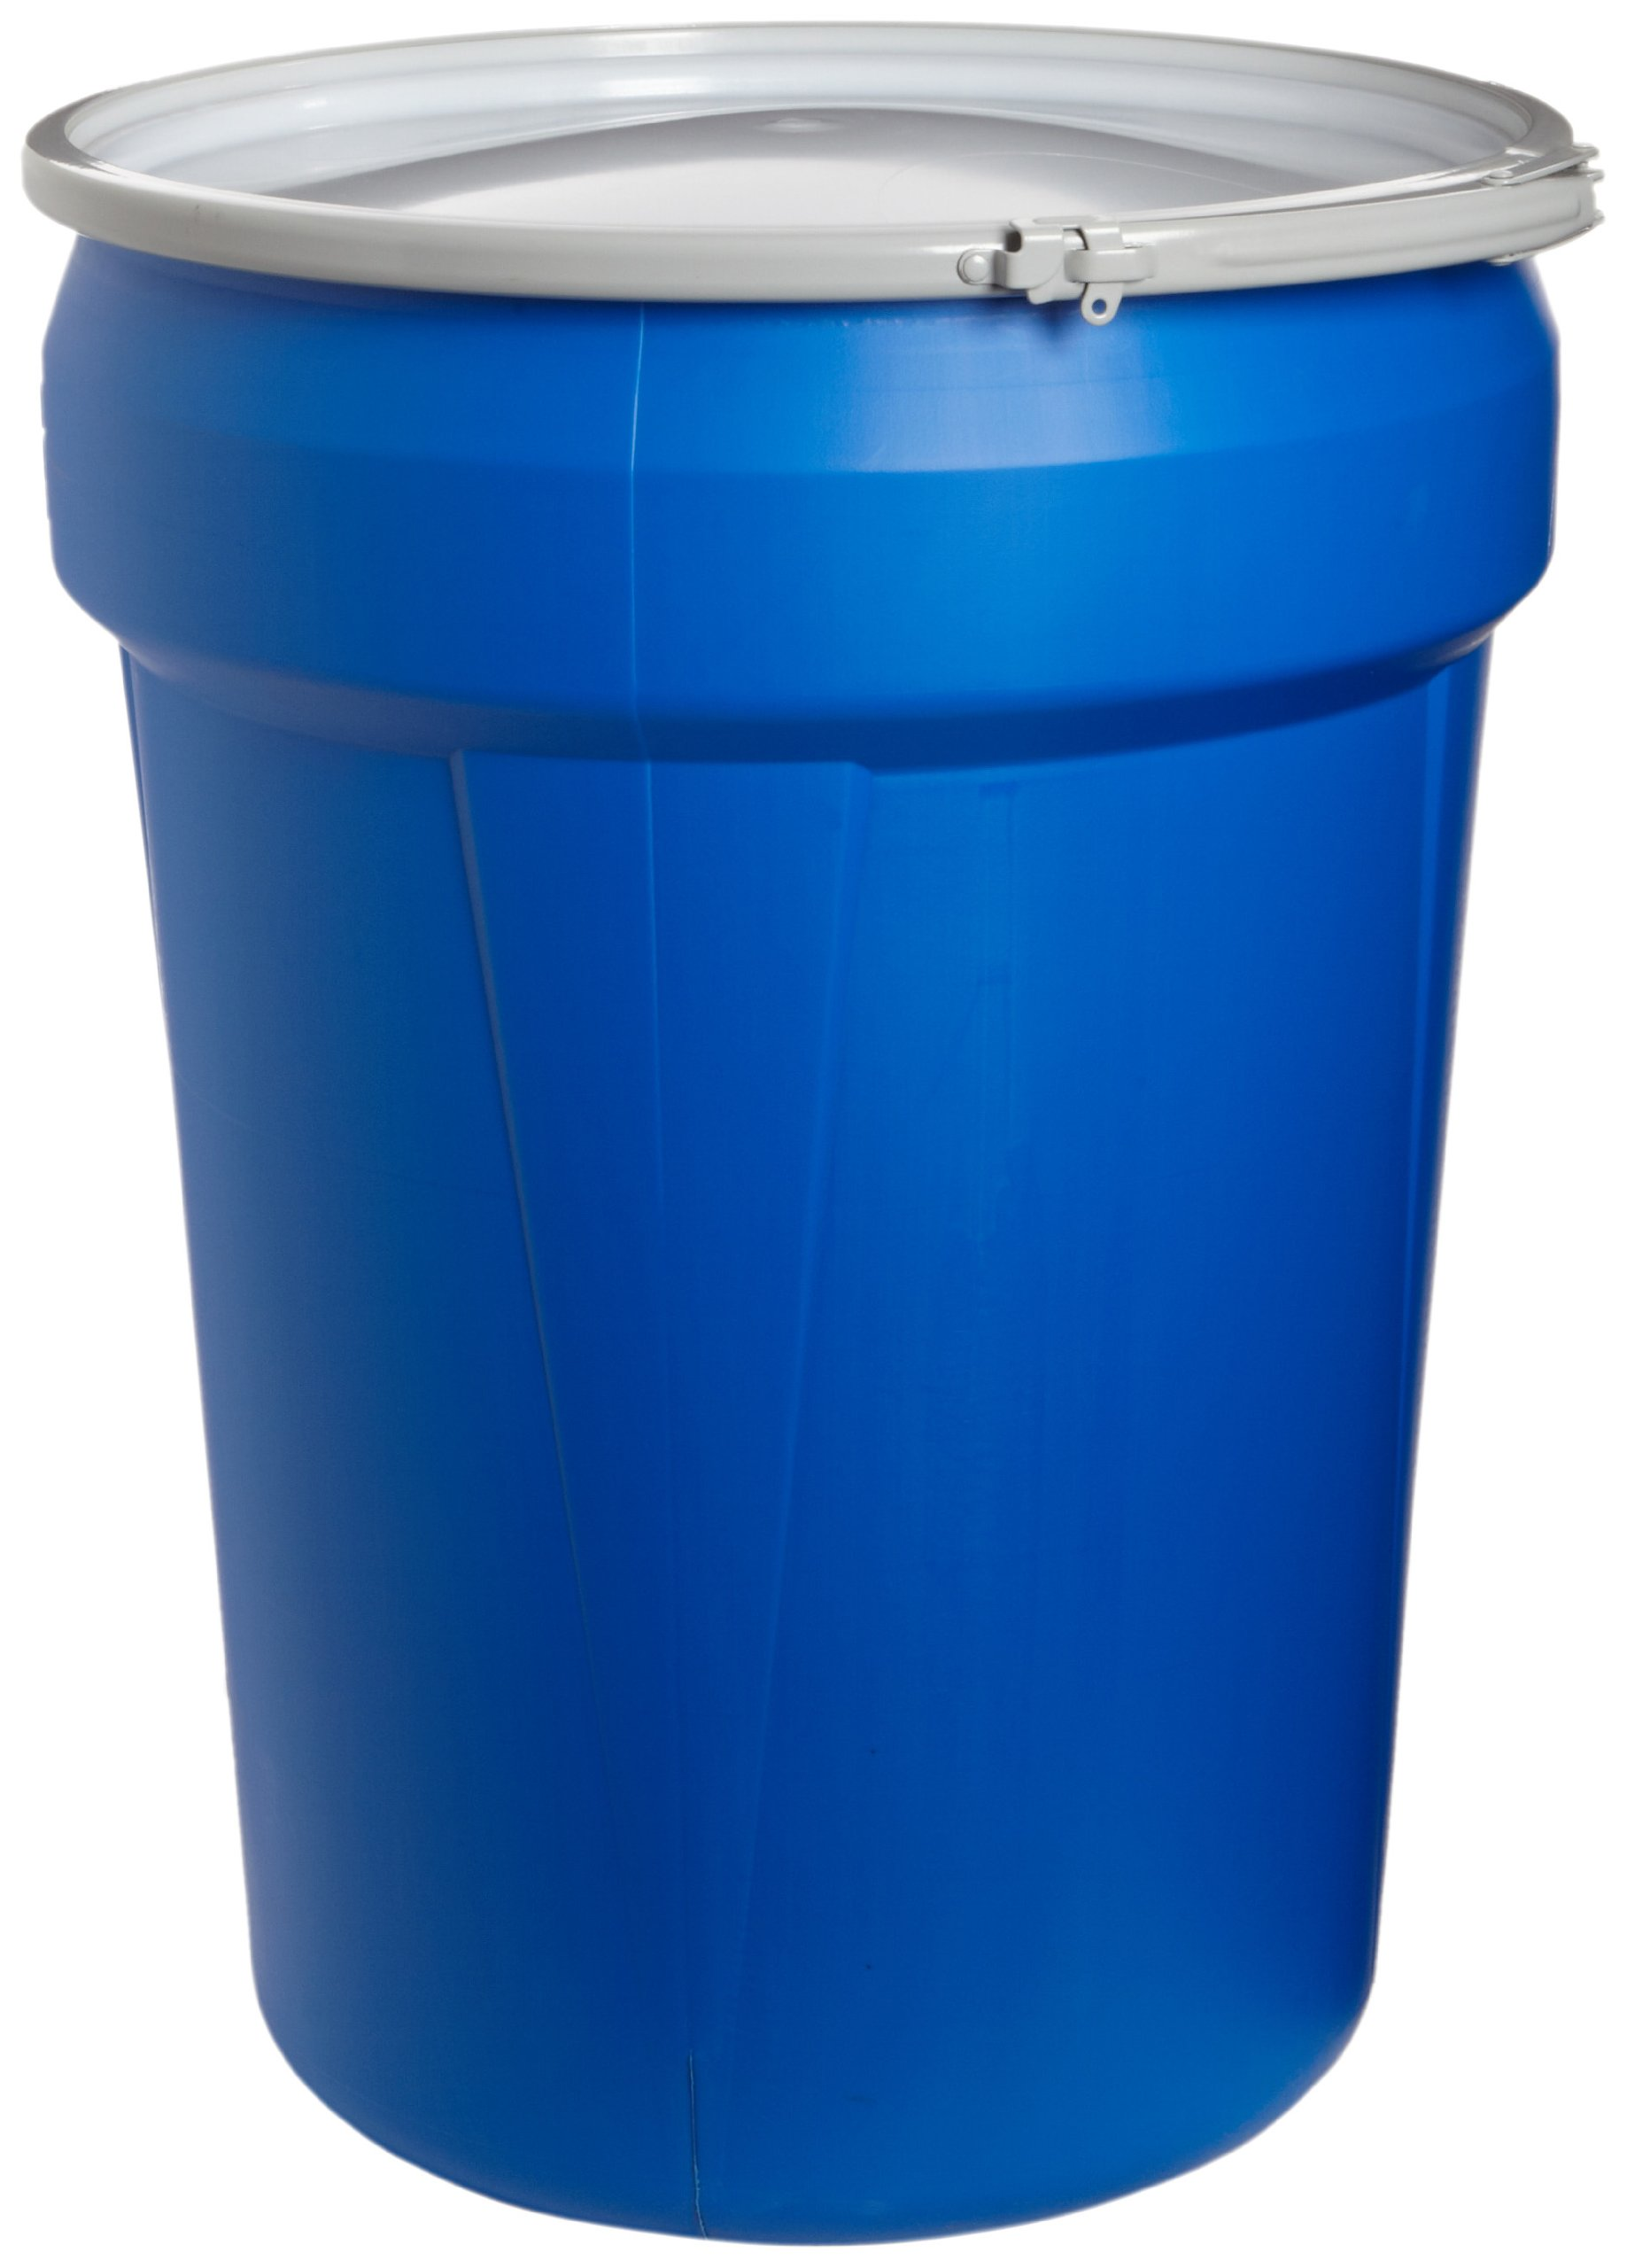 Eagle 1601MB Blue High Density Polyethylene Lab Pack Drum with Metal Lever-lock Lid, 30 gallon Capacity, 28.5'' Height, 21.25'' Diameter